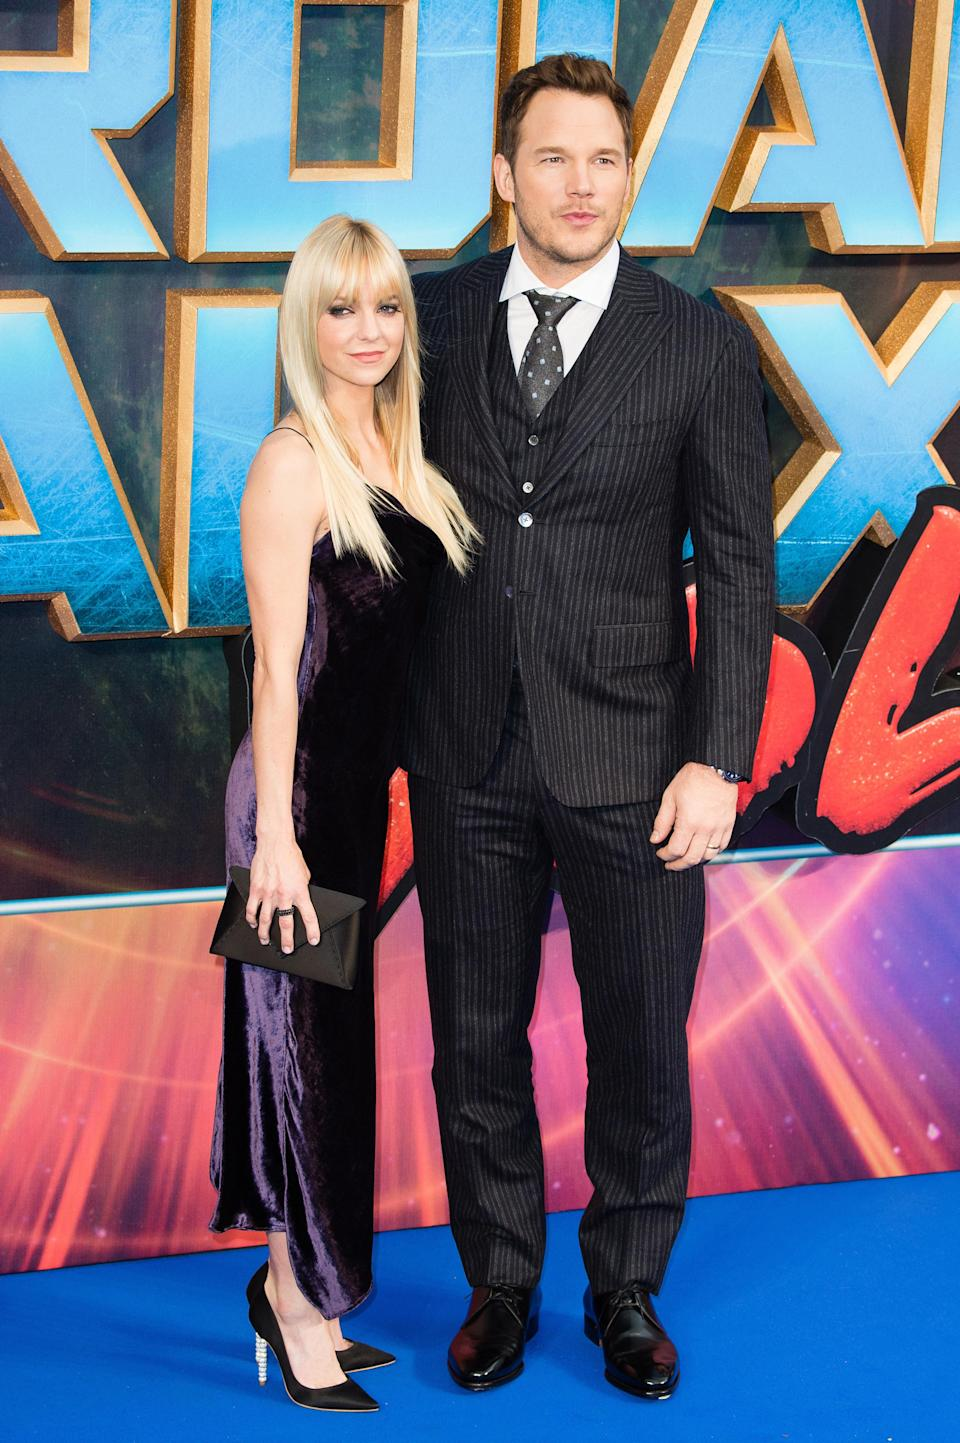 These two were on top of the Hollywood power couple list up until the very moment they announced their split in 2017. They are both happily remarried to other people, but I still miss what we had.